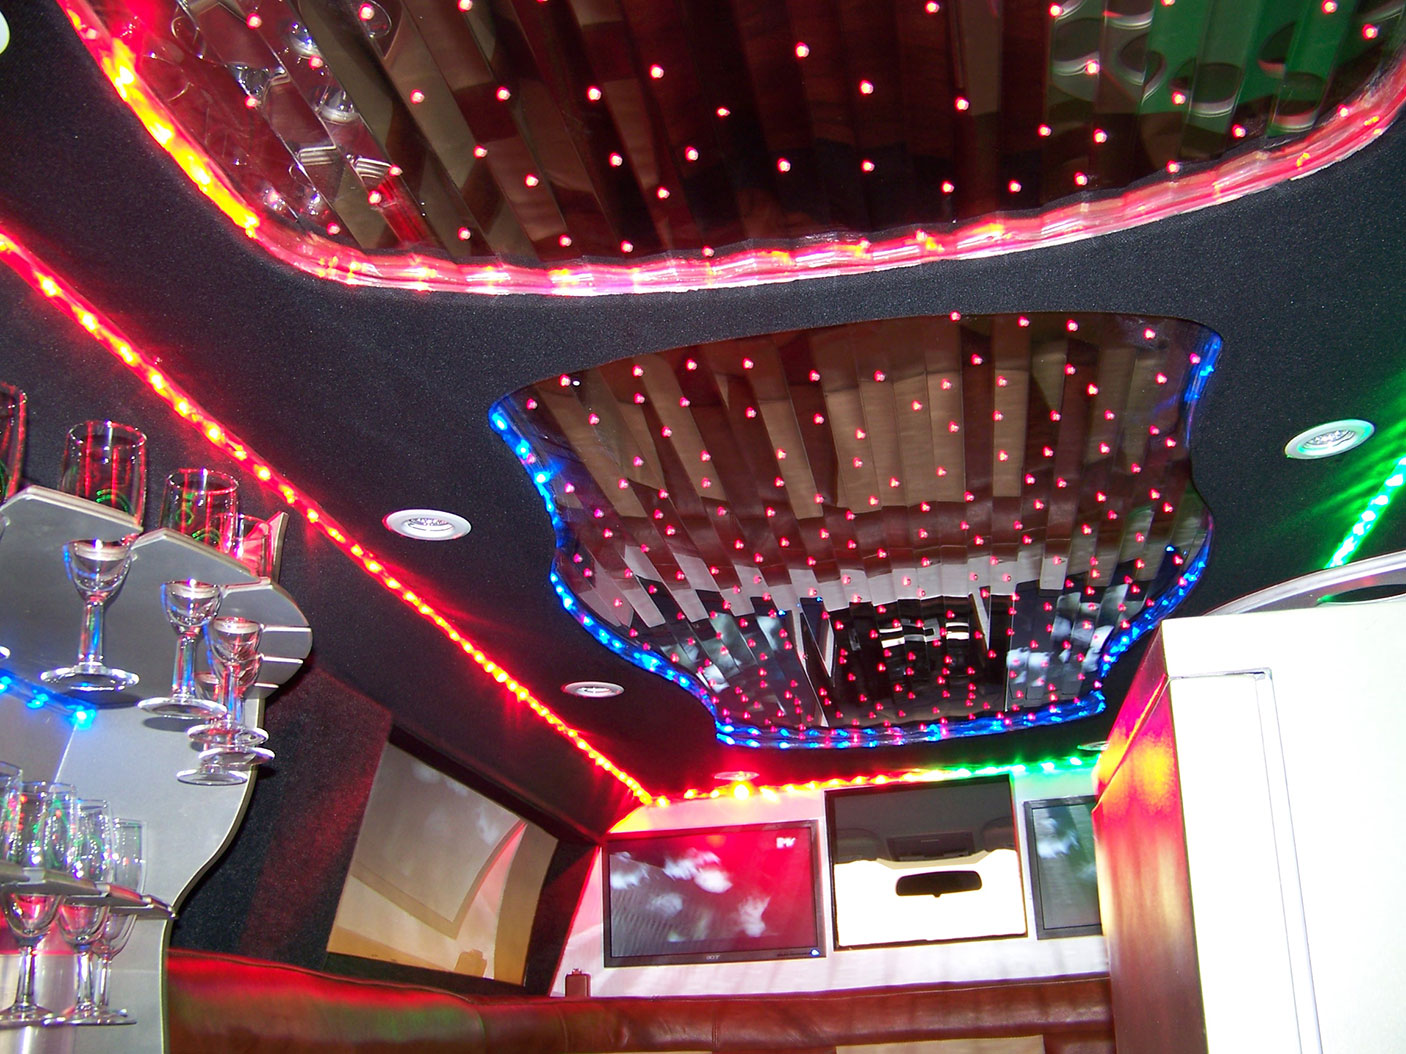 8 star Stretched Limousine inside display